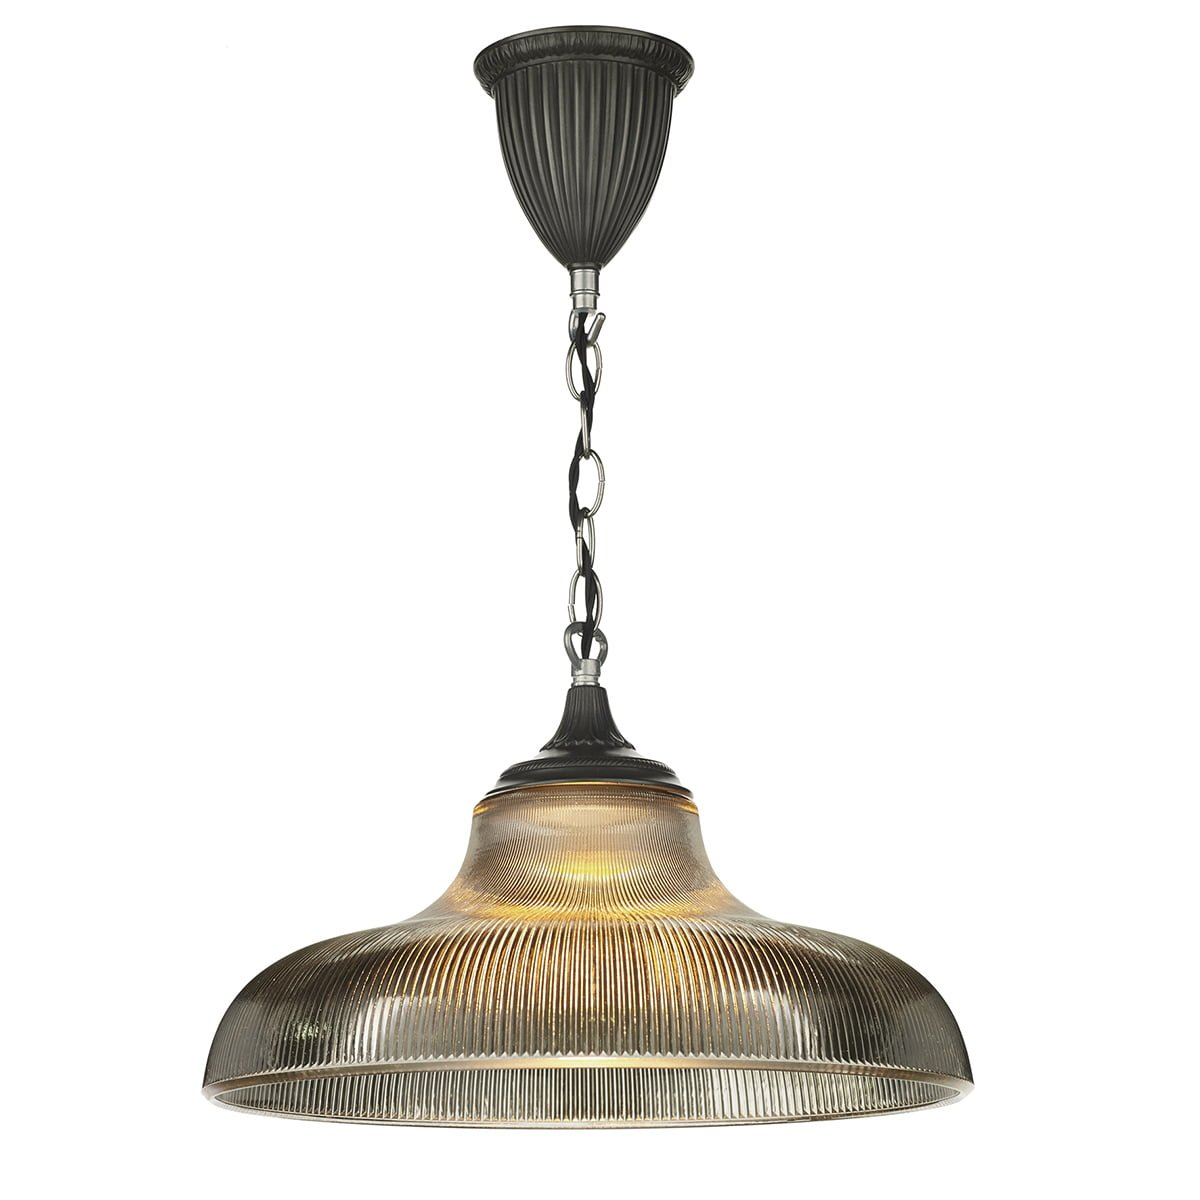 David Hunt Lighting BAD018 Badger 1 Light Pendant in Steel